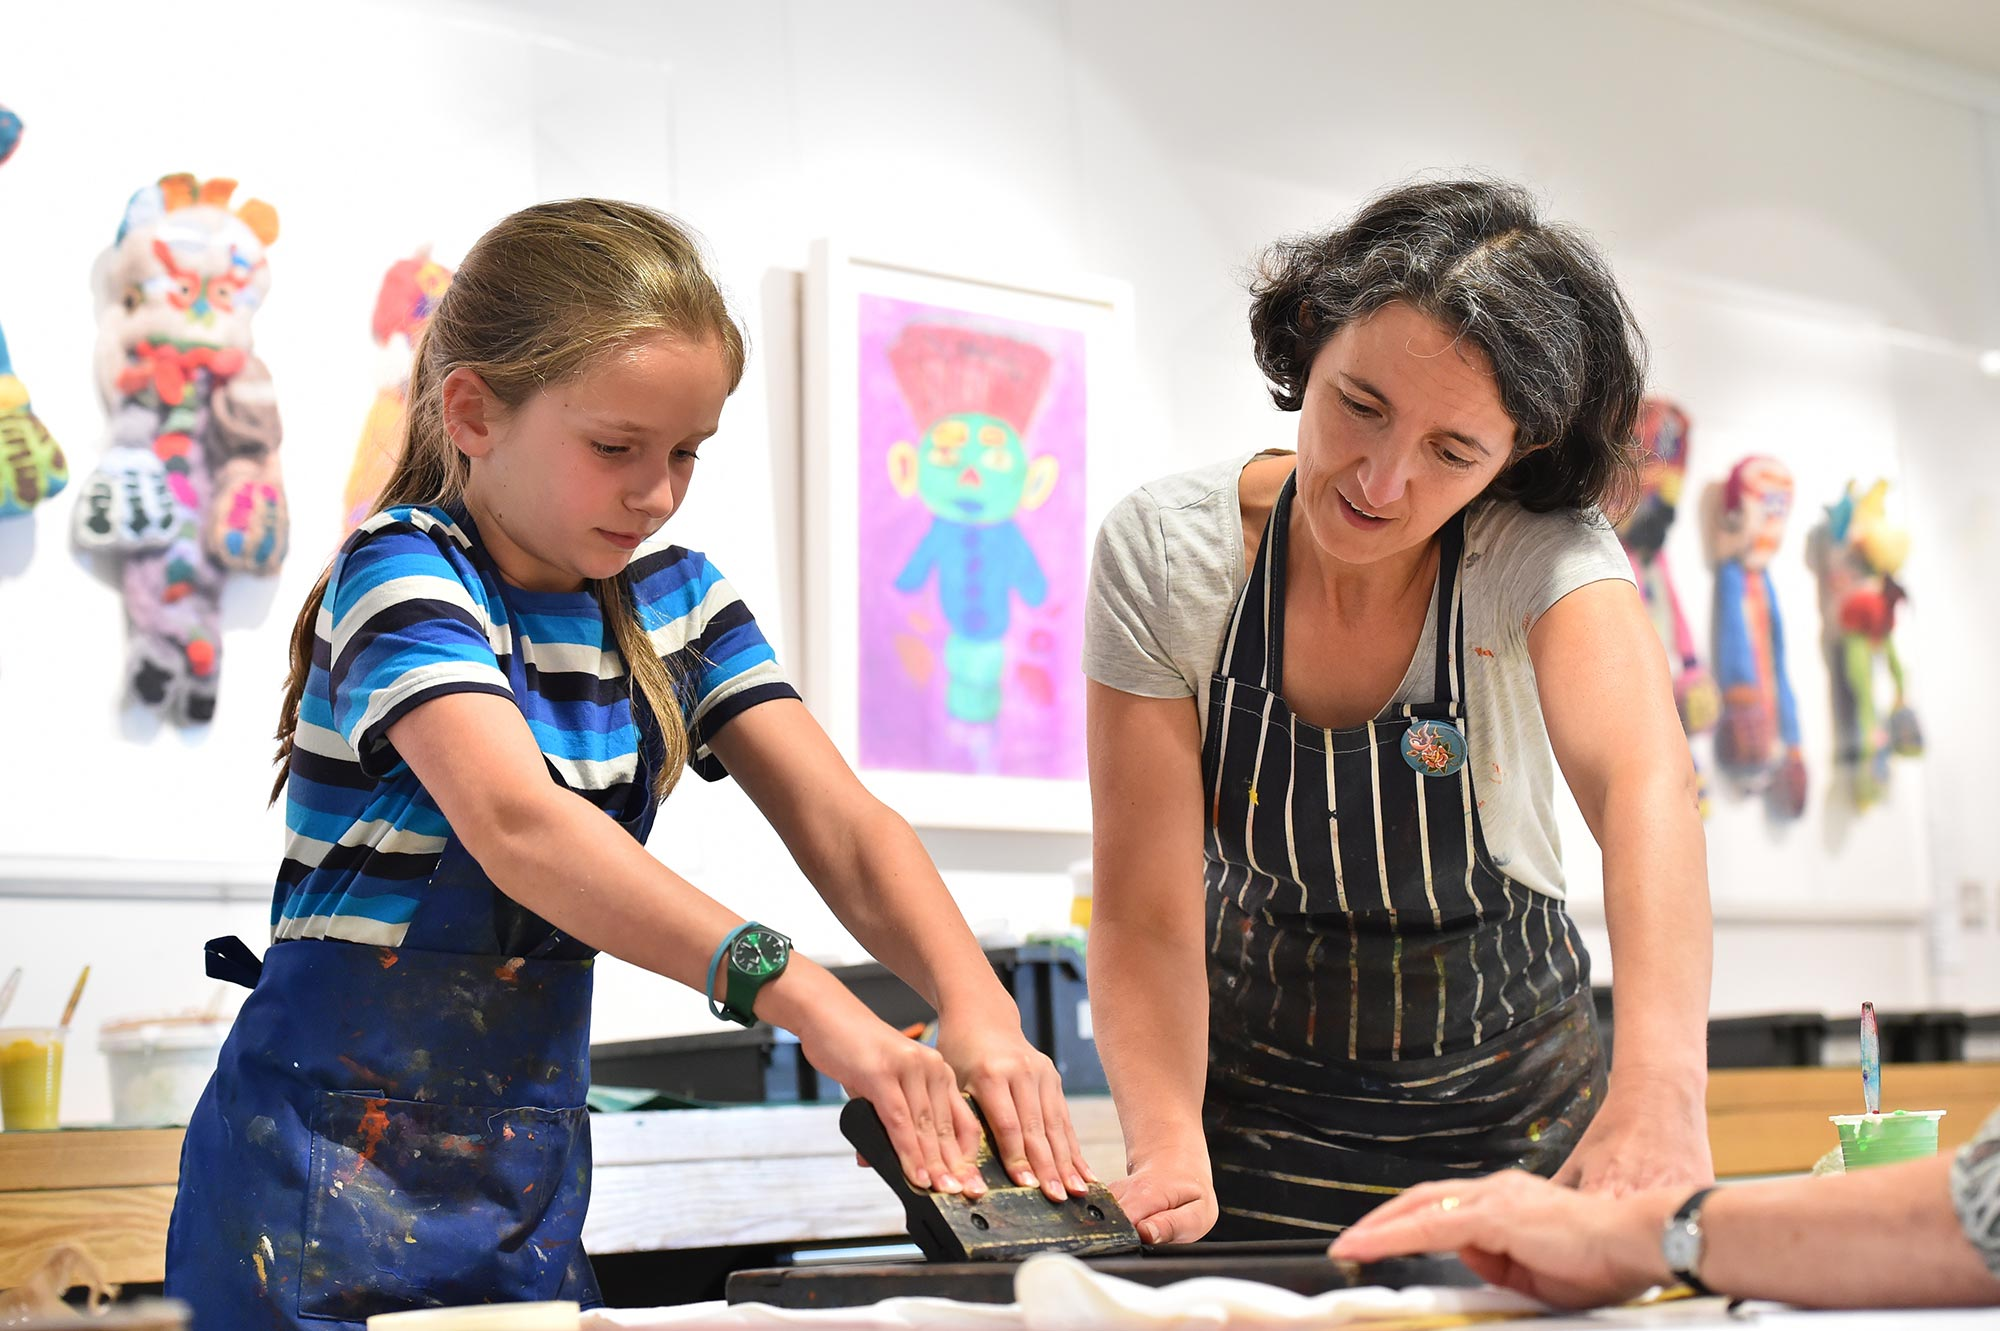 A young girl screen printing while an adult artist educator watches on.